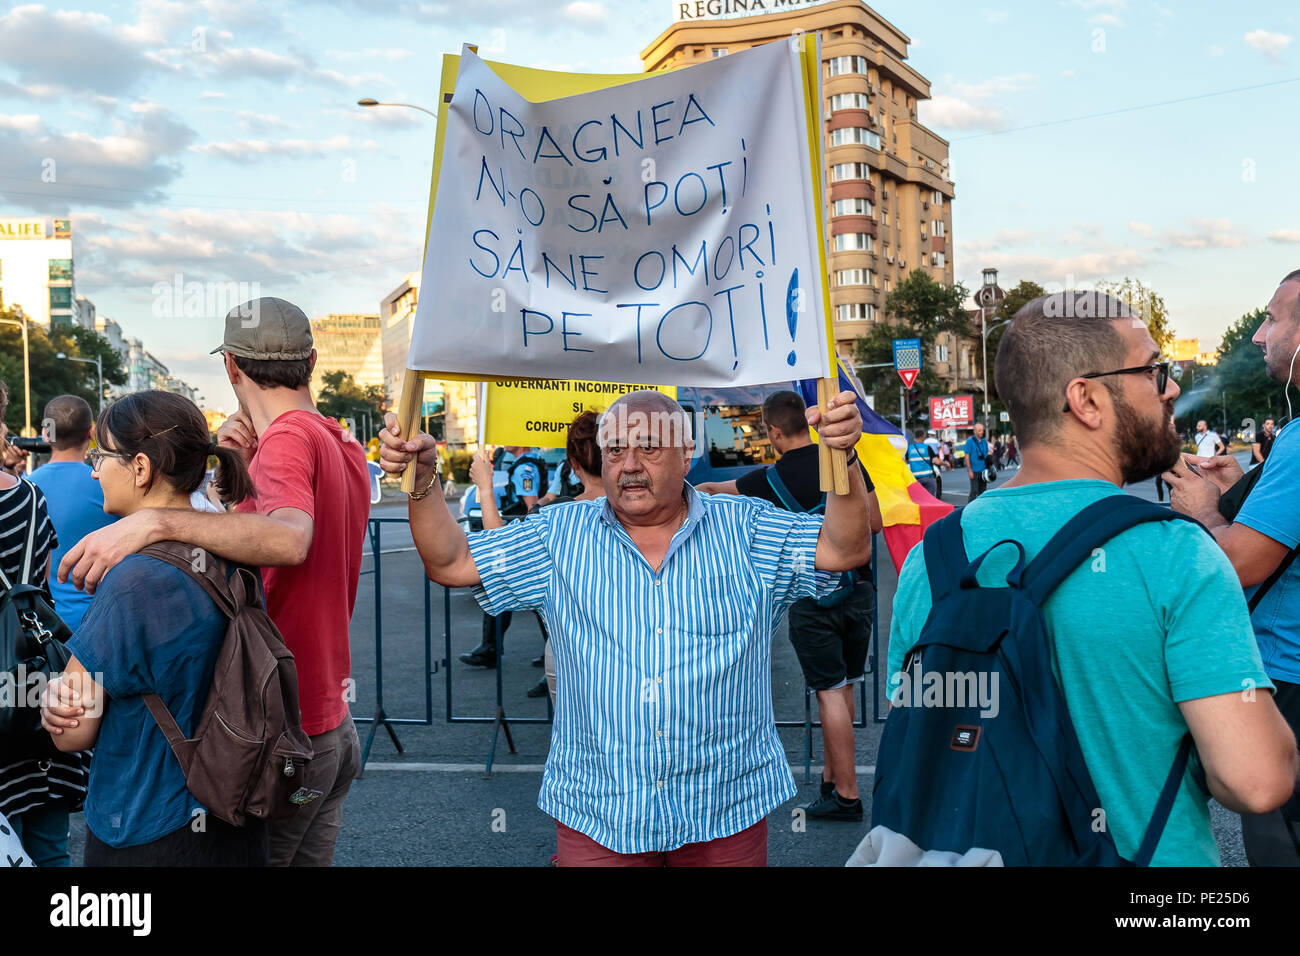 Bucharest, Romania. 11th August 2018. Protests in Bucharest / Romania on August 11 2018 against the corrupt government ruled in majority by the Social Democrat Party. Credit: Marius Eduard Canura/Alamy Live News Stock Photo